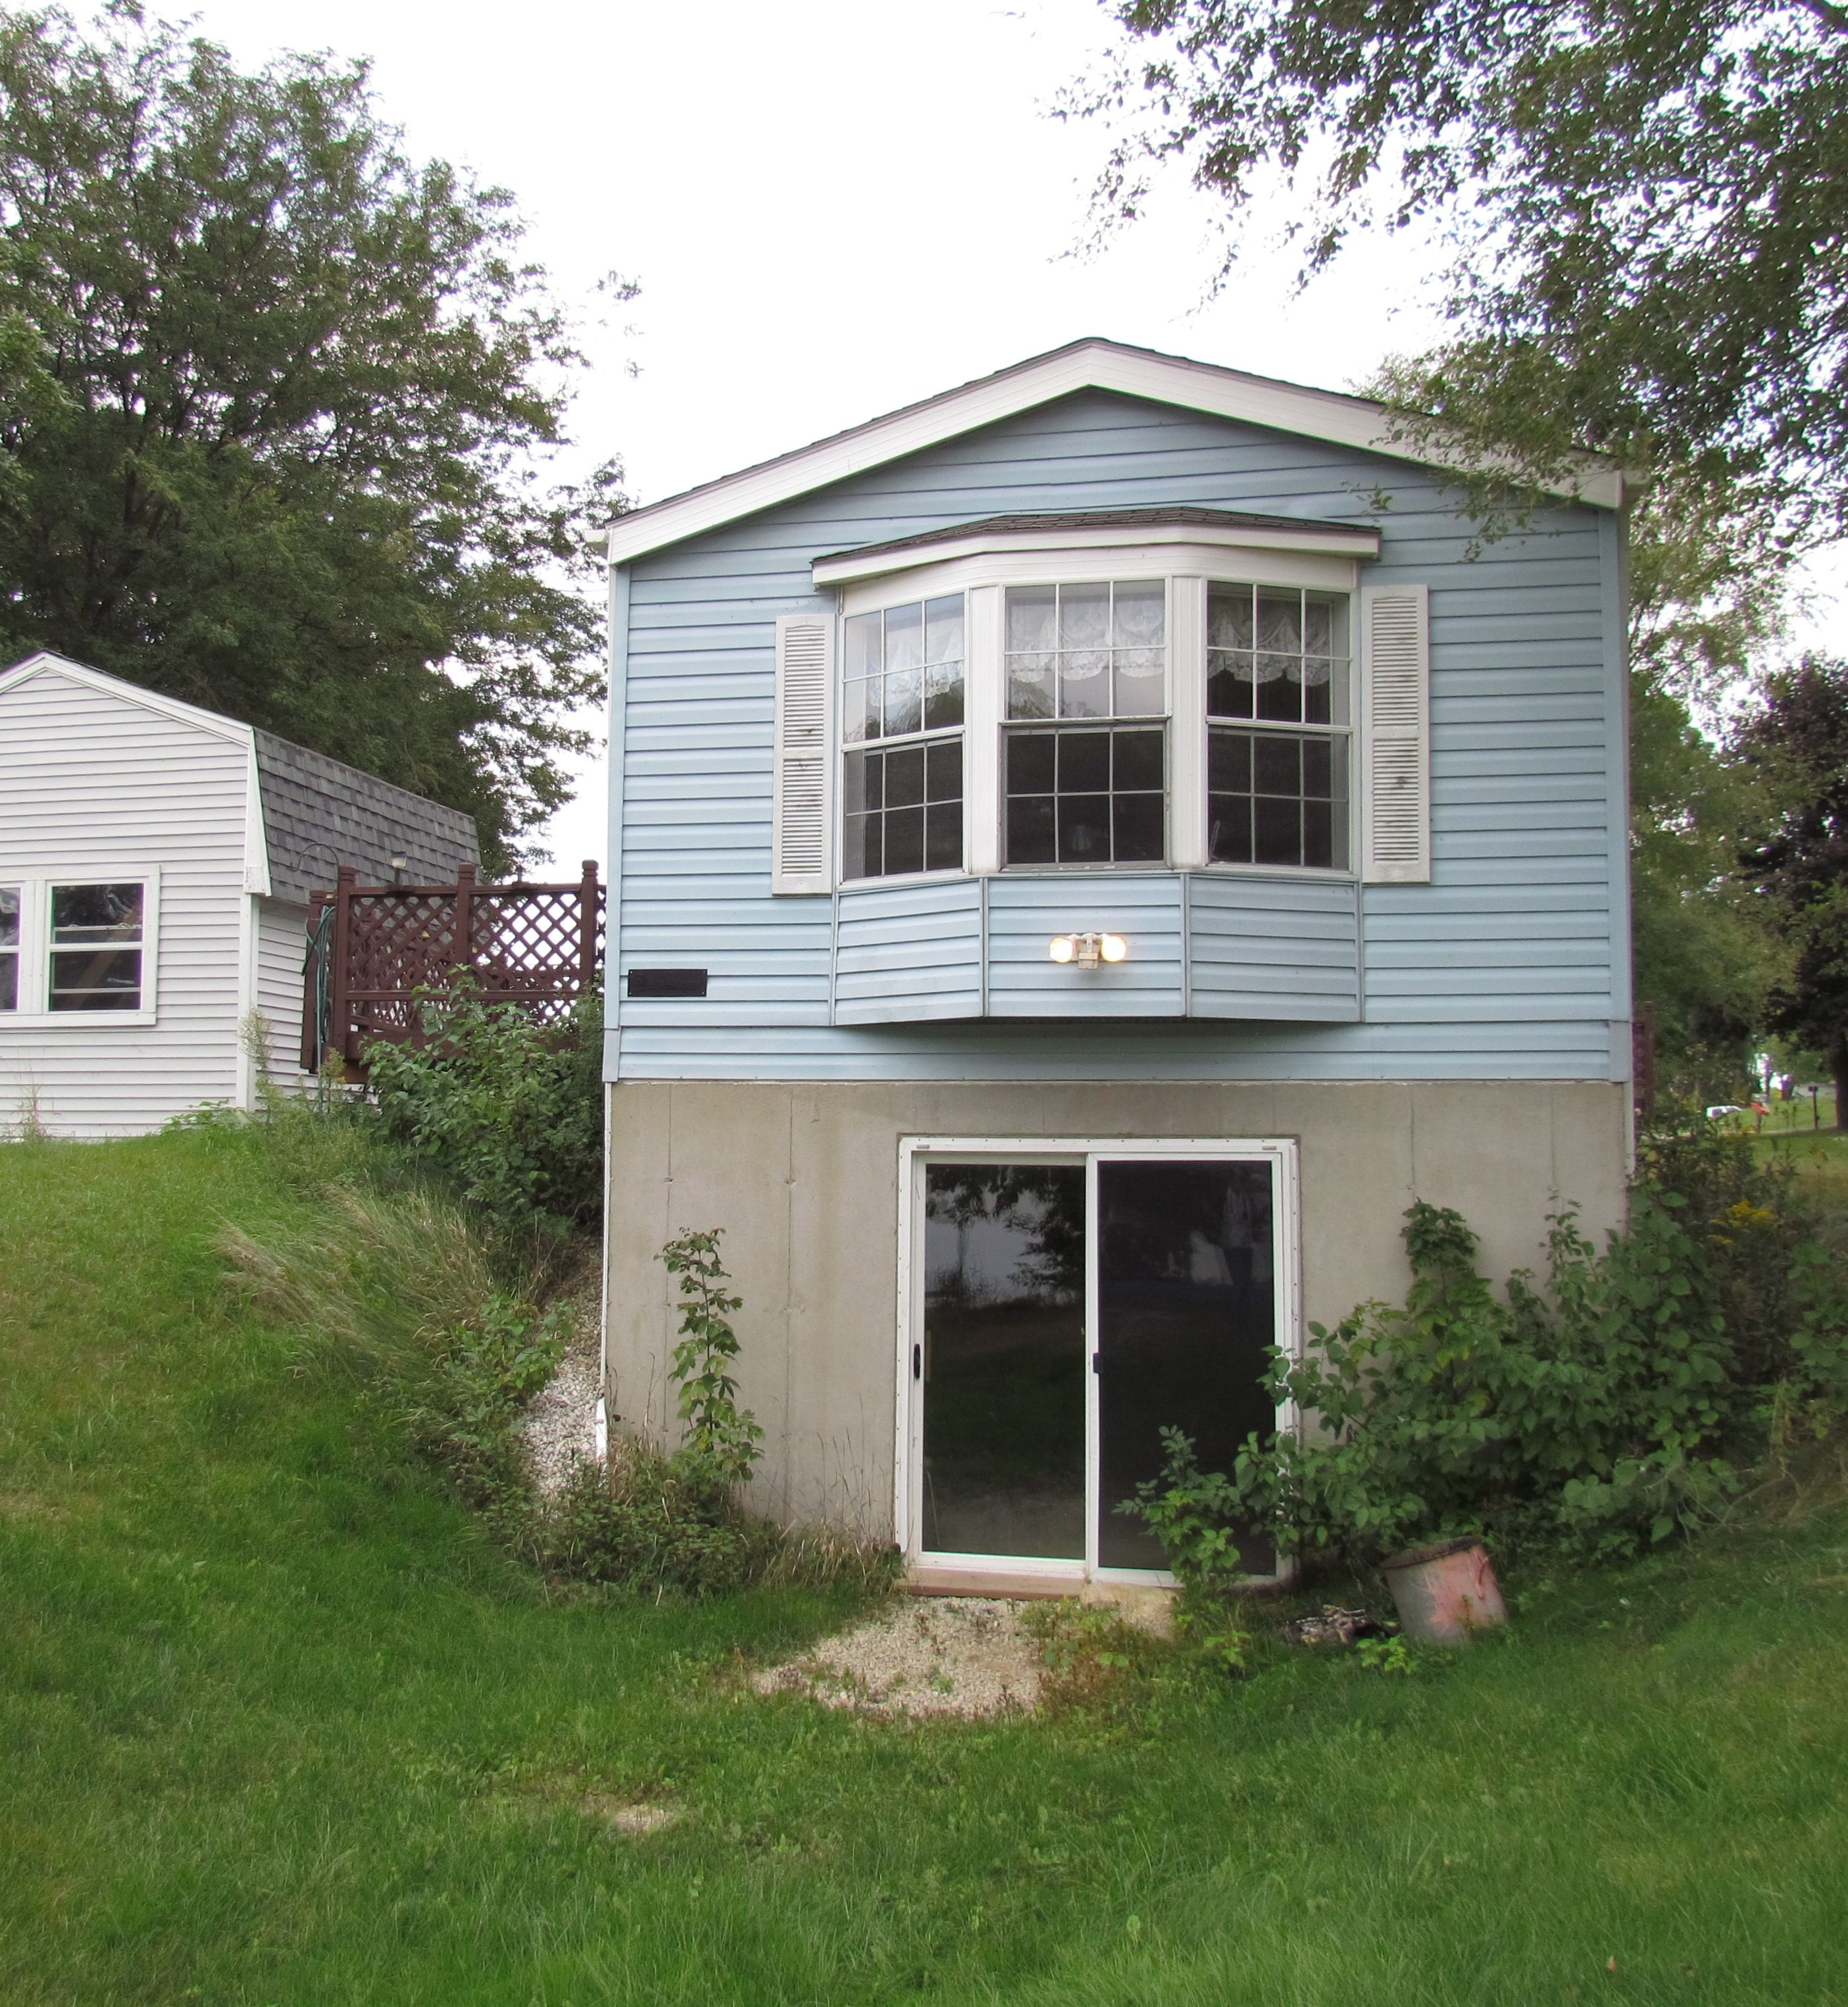 The Whim A Single Wide Remodeled with Cedar Shake Siding Part 2